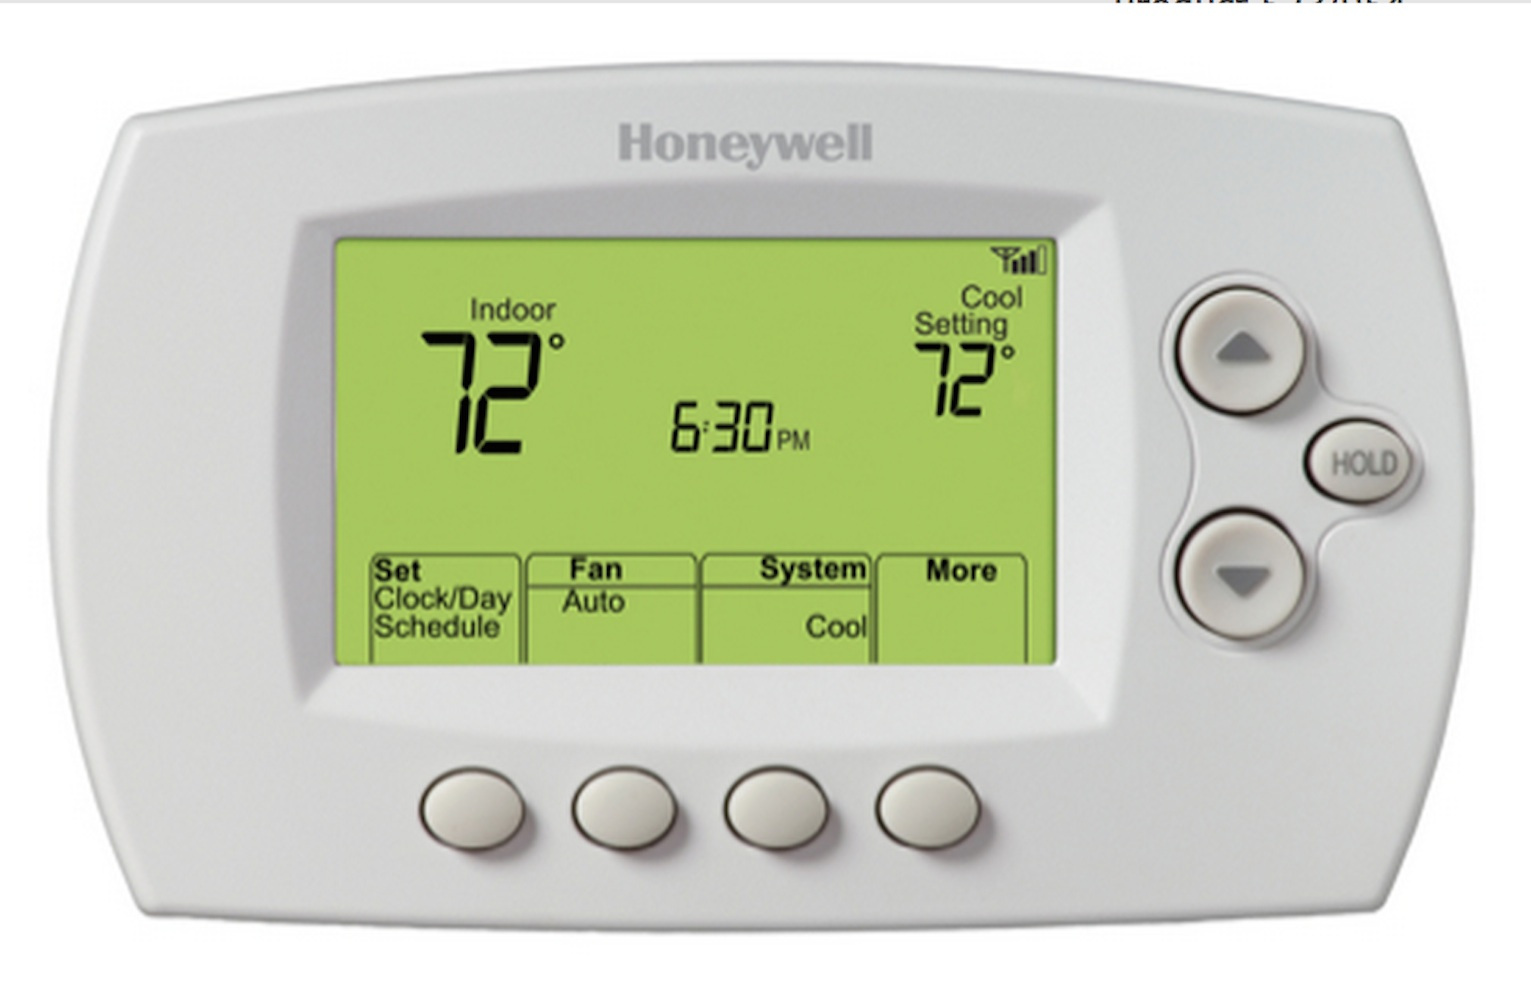 Honeywell TH6320WF1005 Wi-Fi FocusPro 7 Day Programmable Thermostat